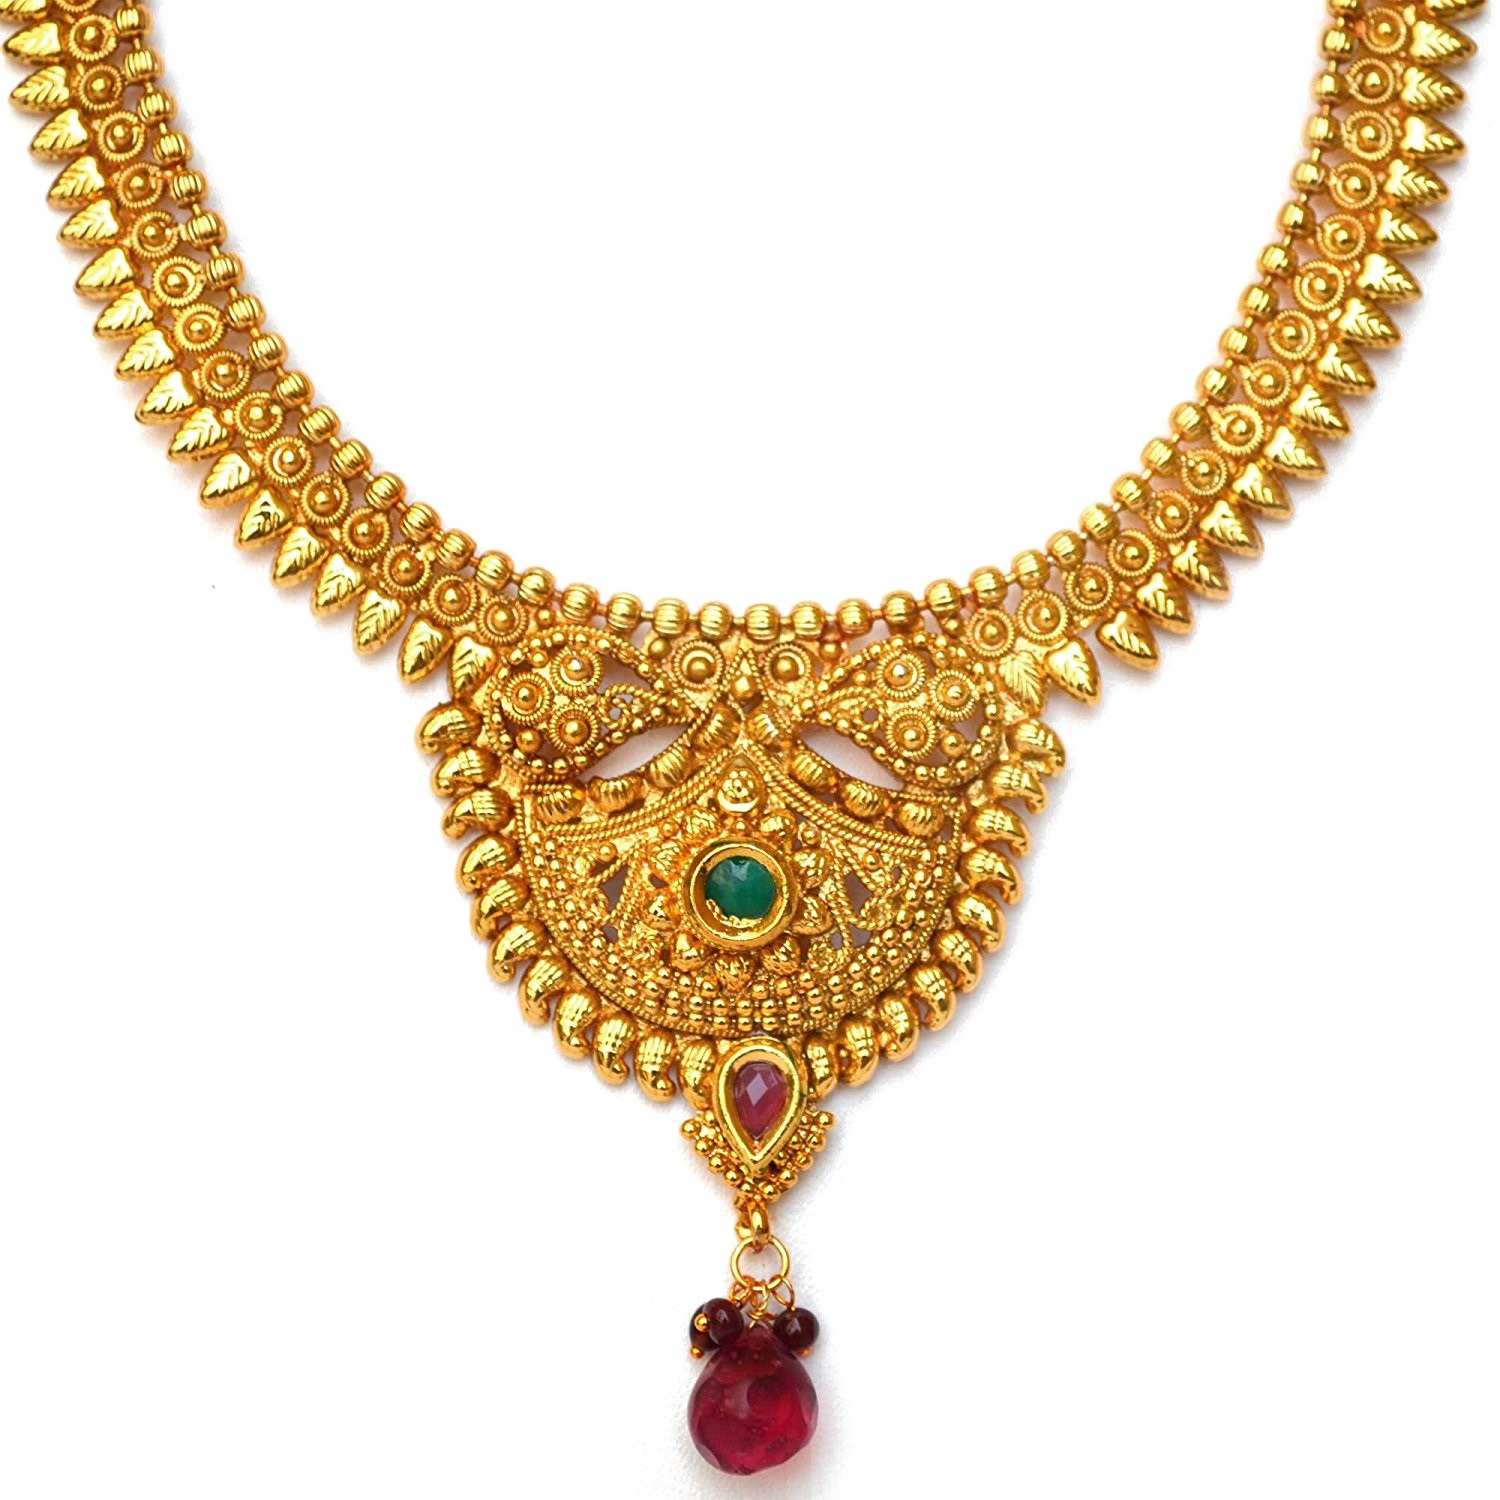 Necklace PNG Images, Jewellers Necklace Designs Pictures.